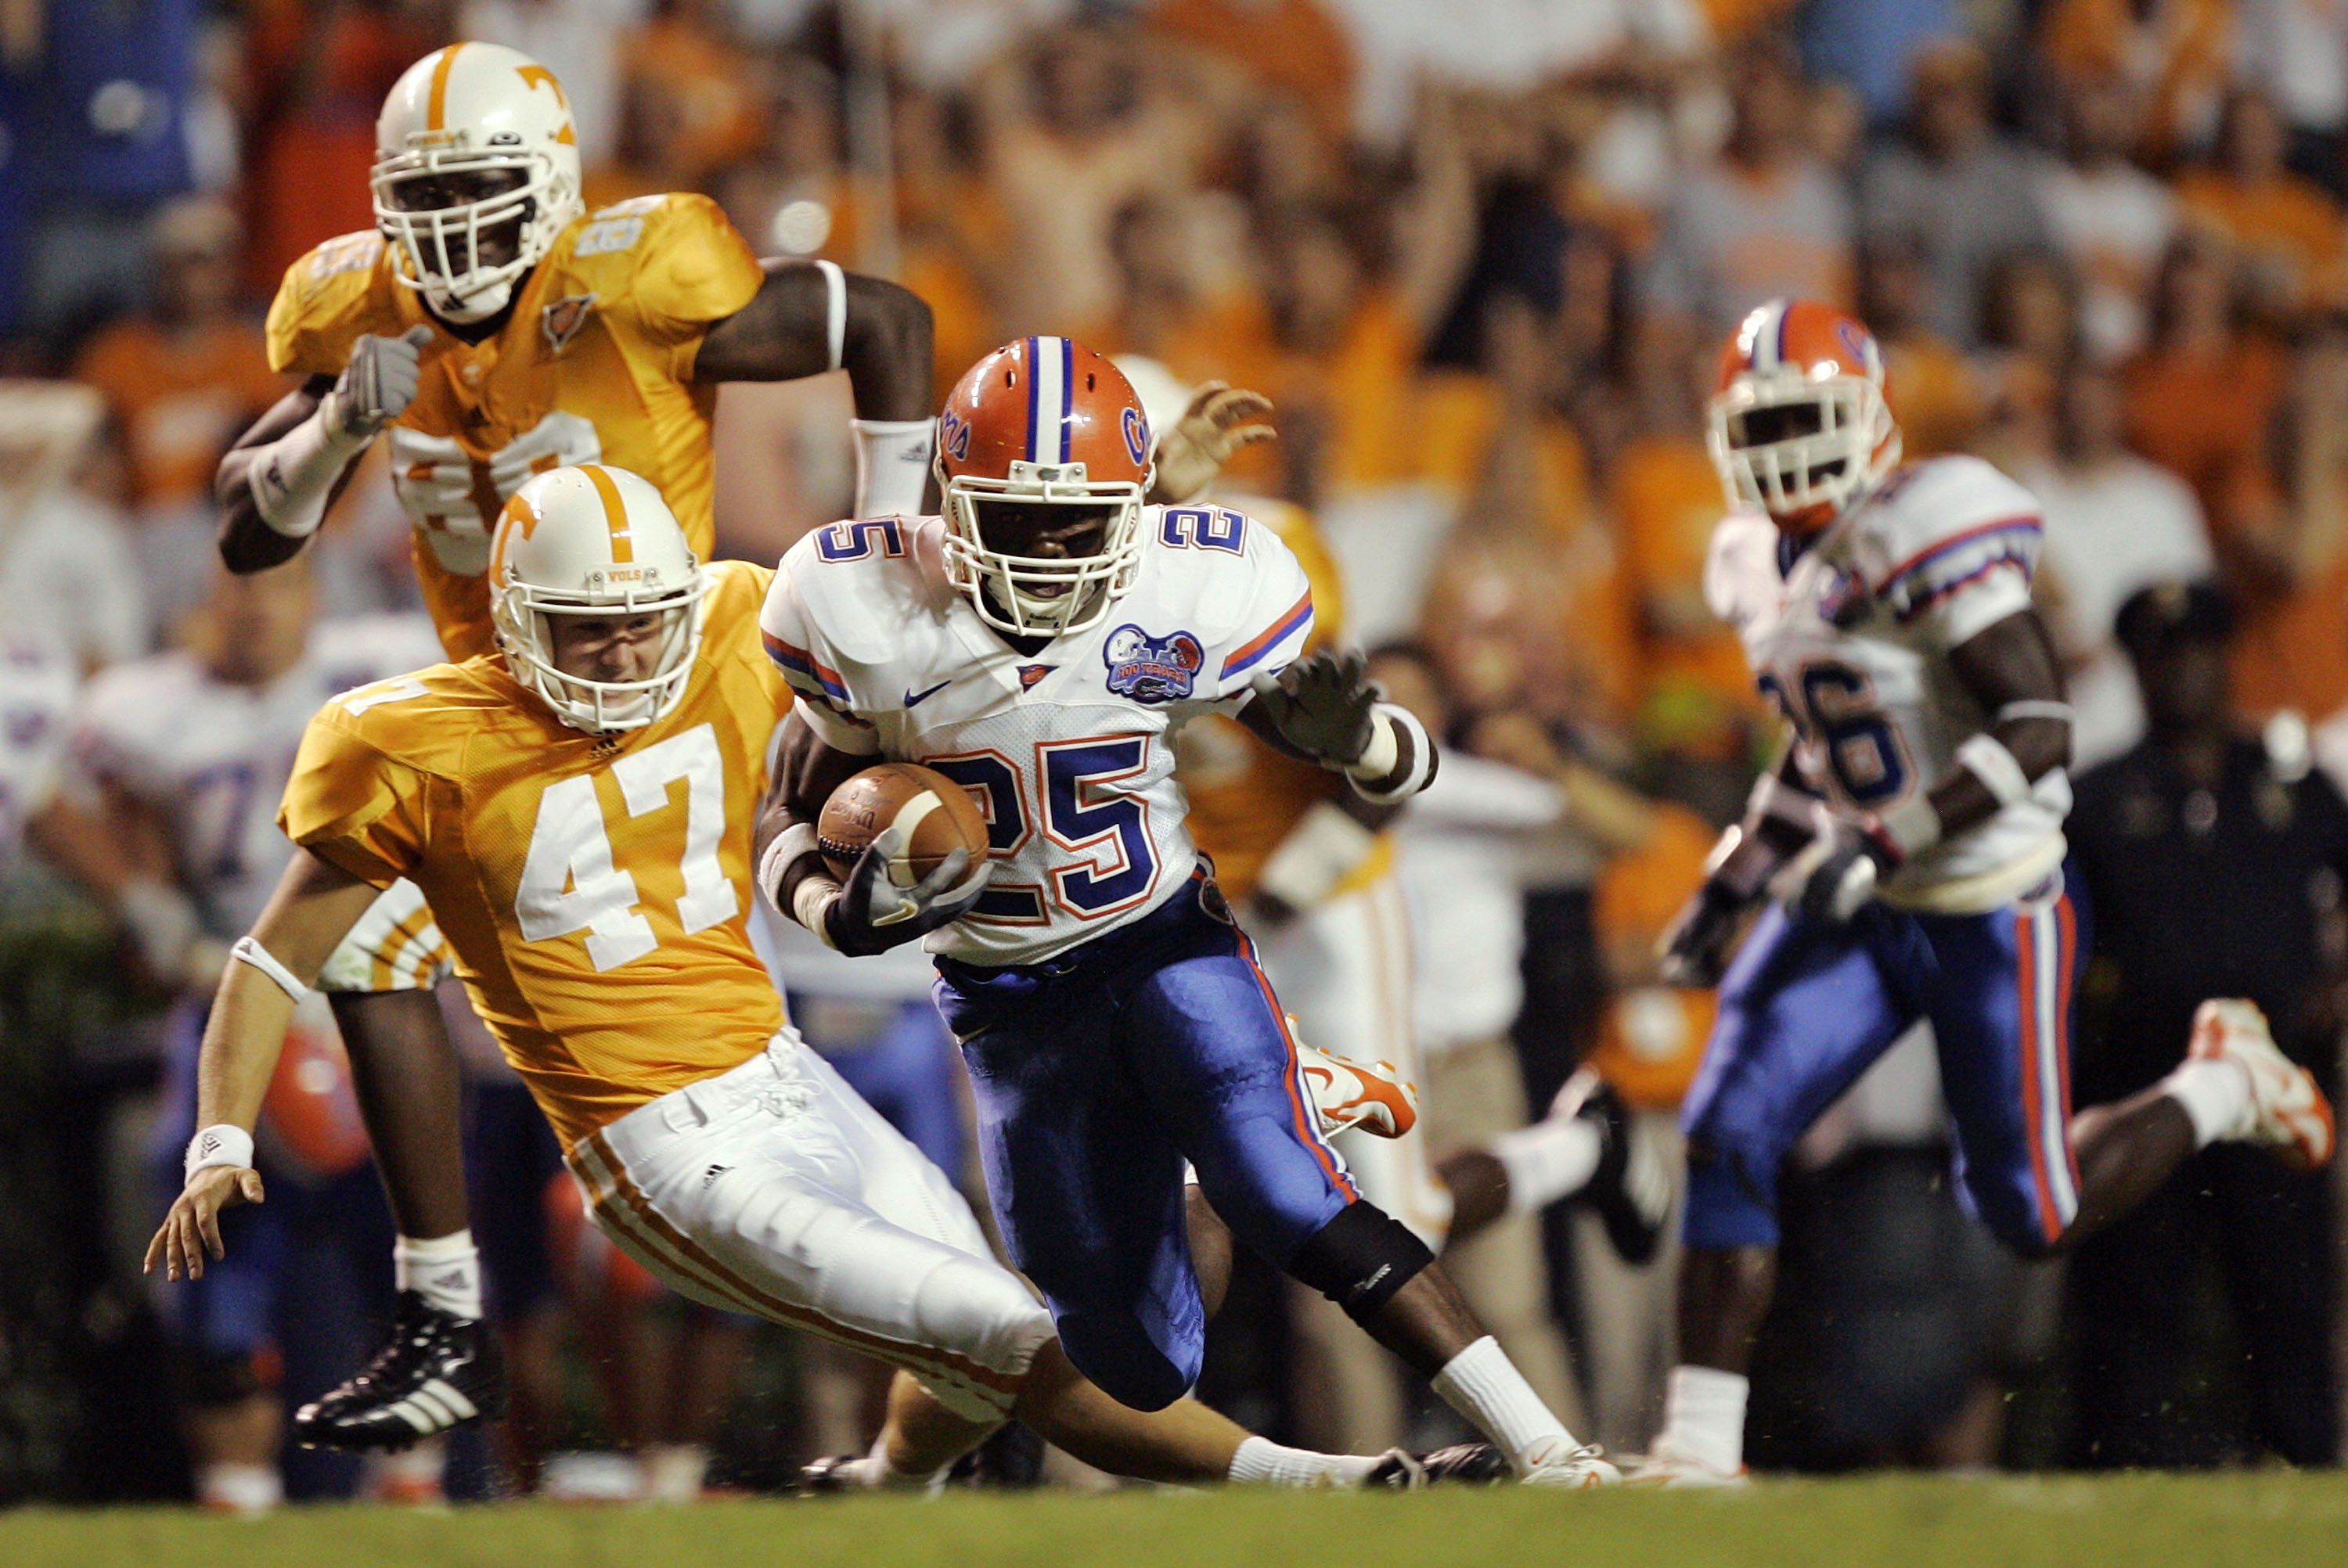 KNOXVILLE, TN - SEPTEMBER 16:  Punter Britton Colquitt #47 of the Tennessee Volunteers trips returner Brandon James #25 of the Florida Gators in the open field for a personal foul in the first quarter on September 16, 2006 at Neyland Stadium in Knoxville,